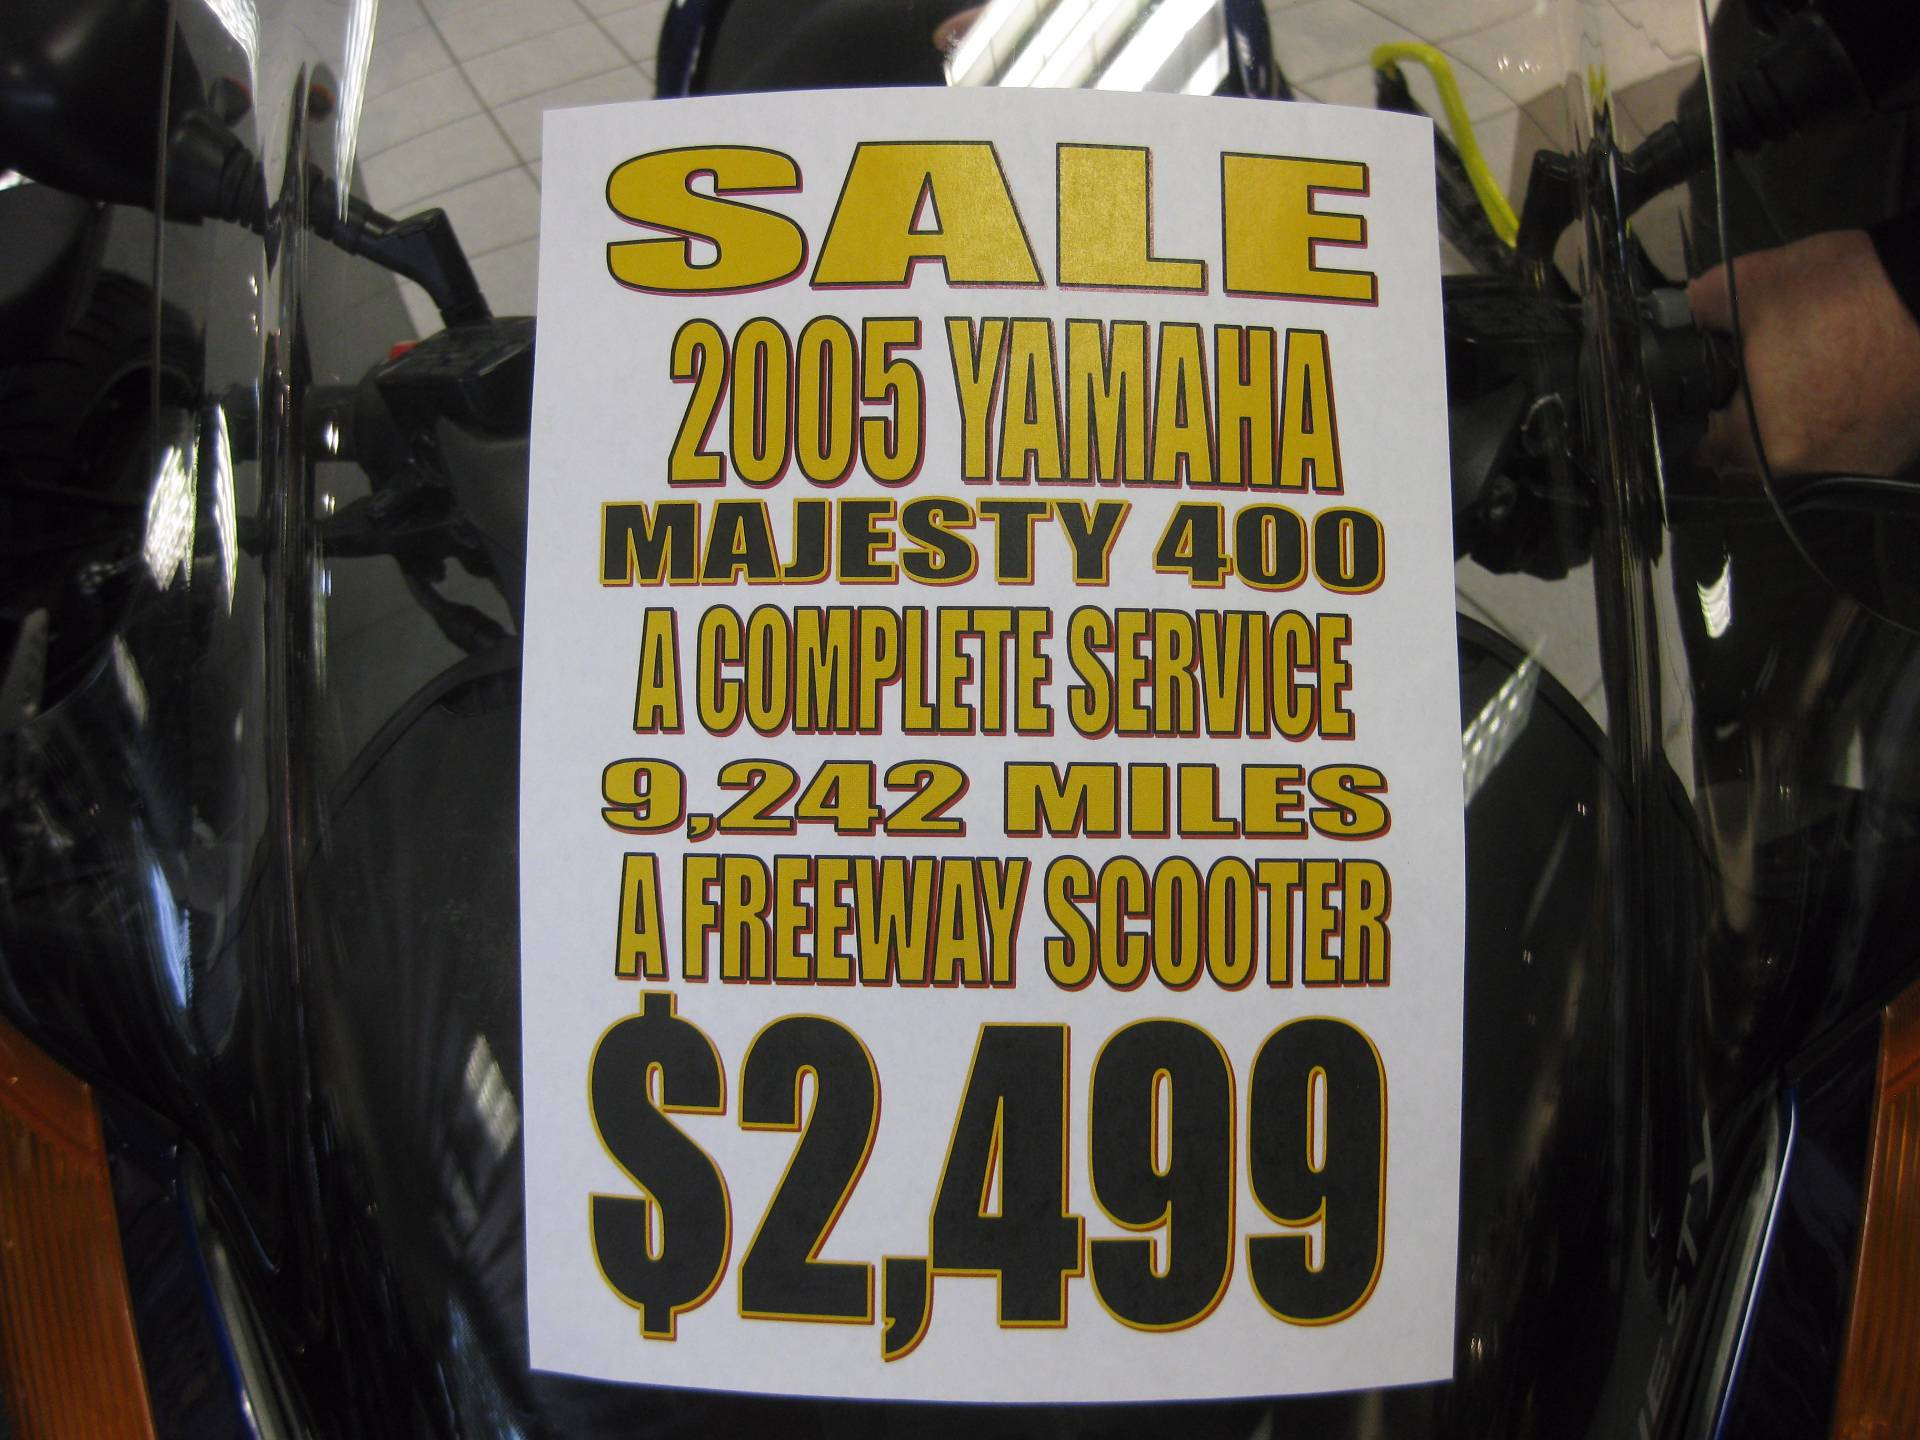 2005 Yamaha Majesty 400 in Wisconsin Rapids, Wisconsin